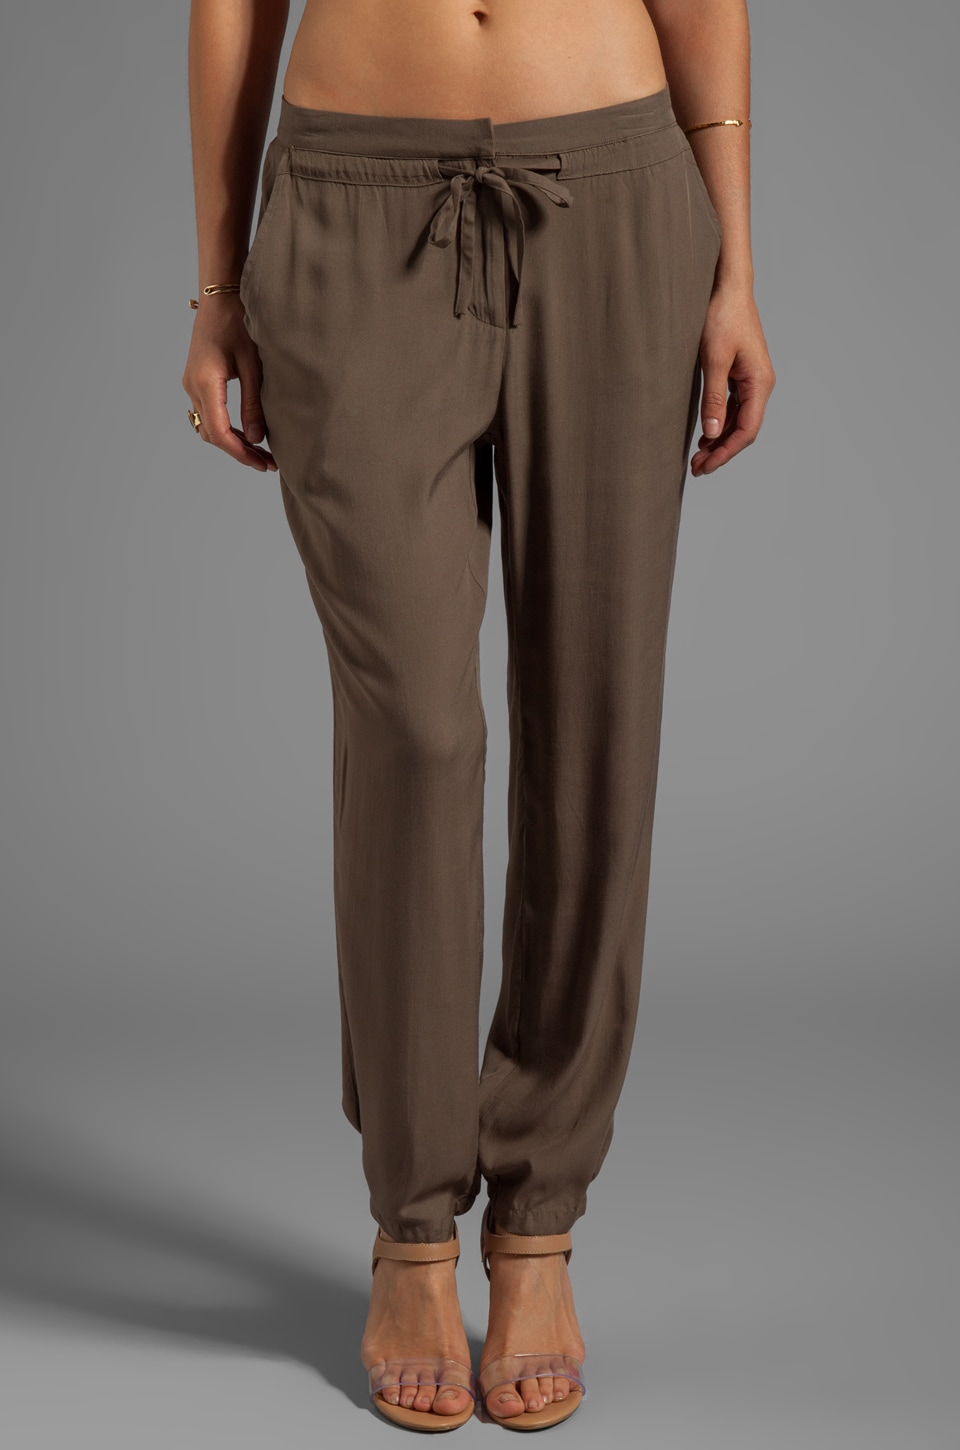 Nation LTD Paradise Cove Pant in Dusty Olive